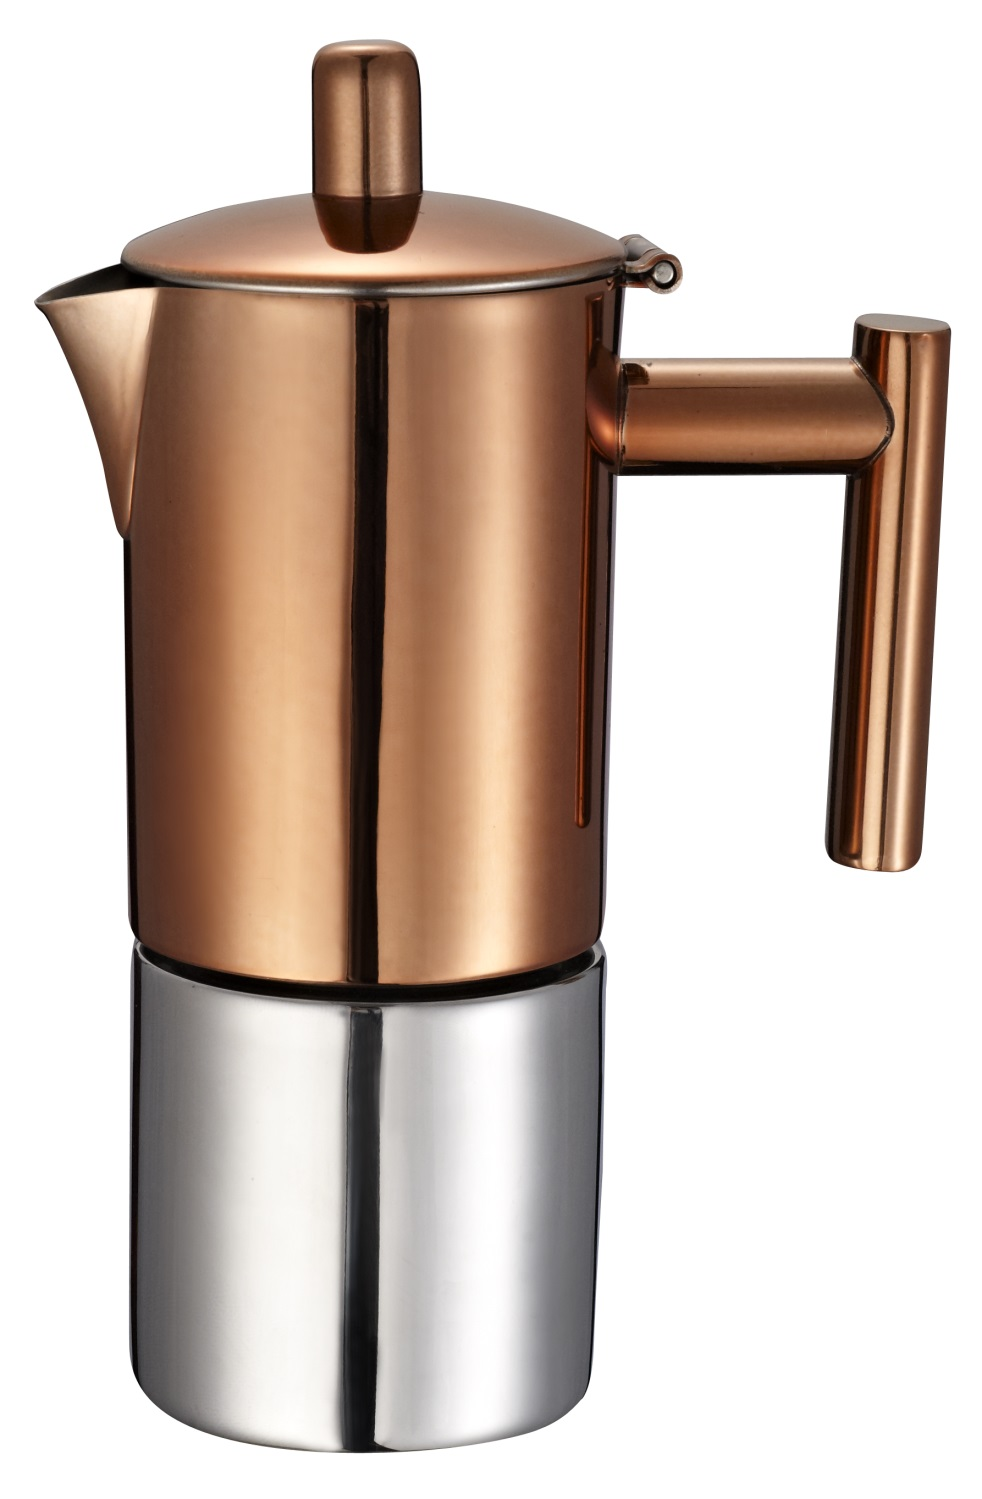 Stainless Steel Stovetop Espresso Maker/coffee maker